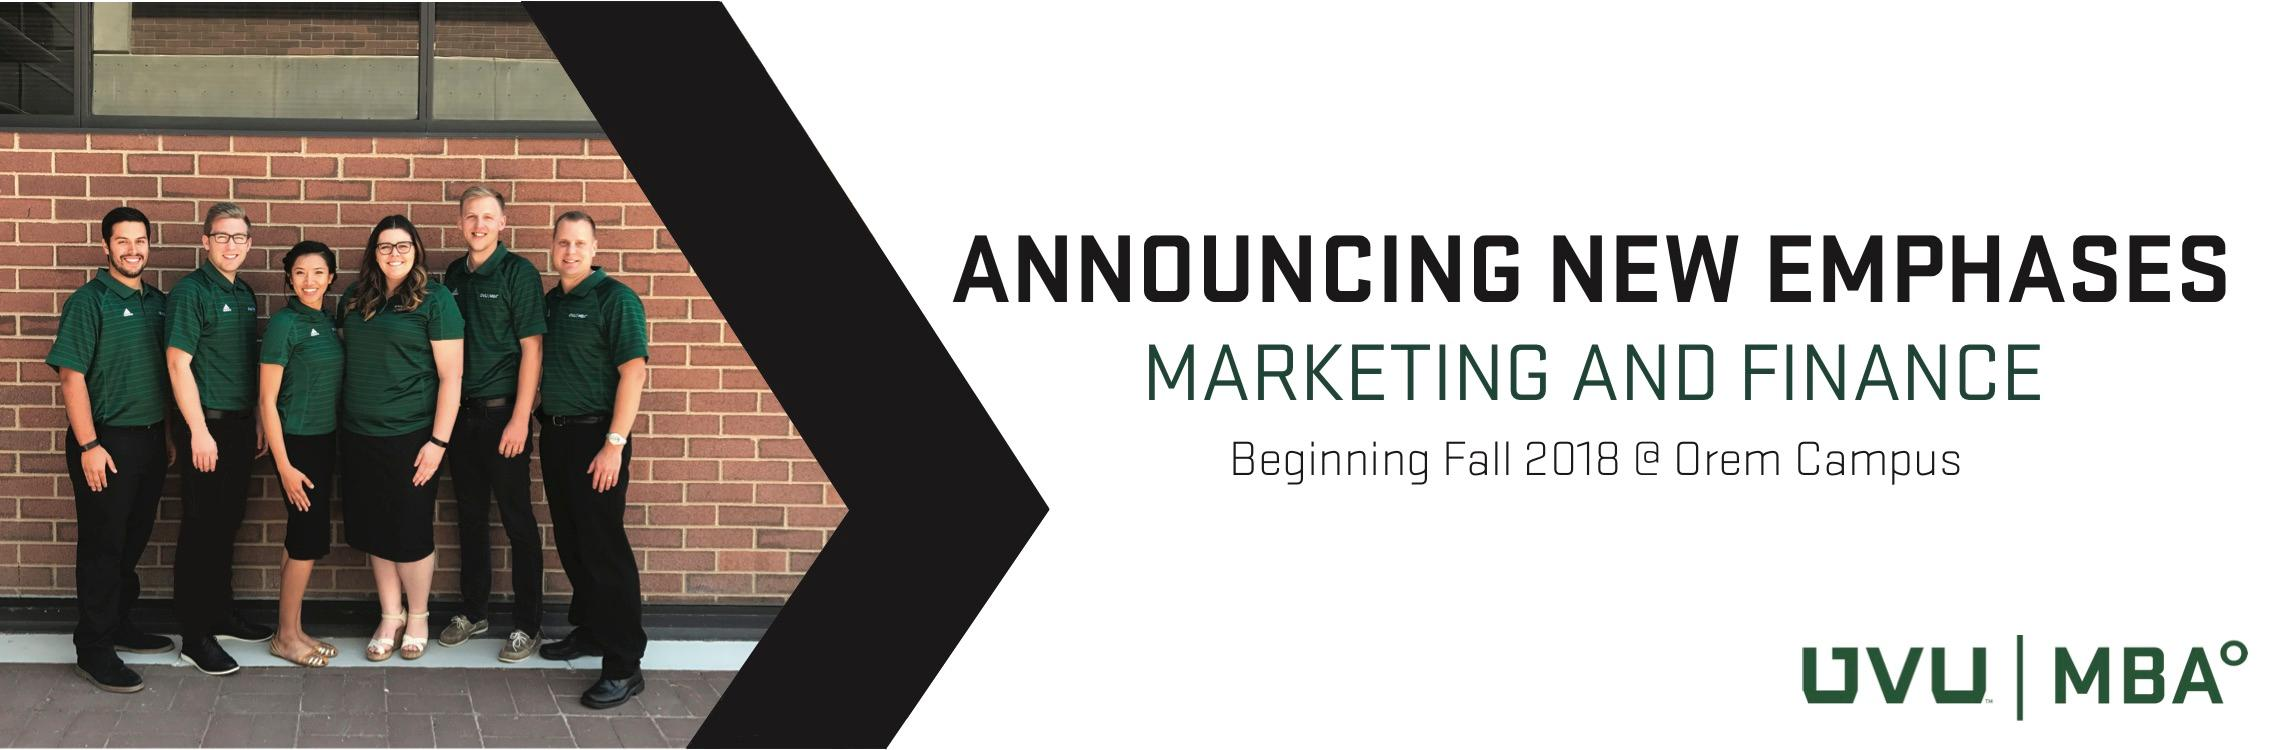 Marketing and Finance emphases are now available.